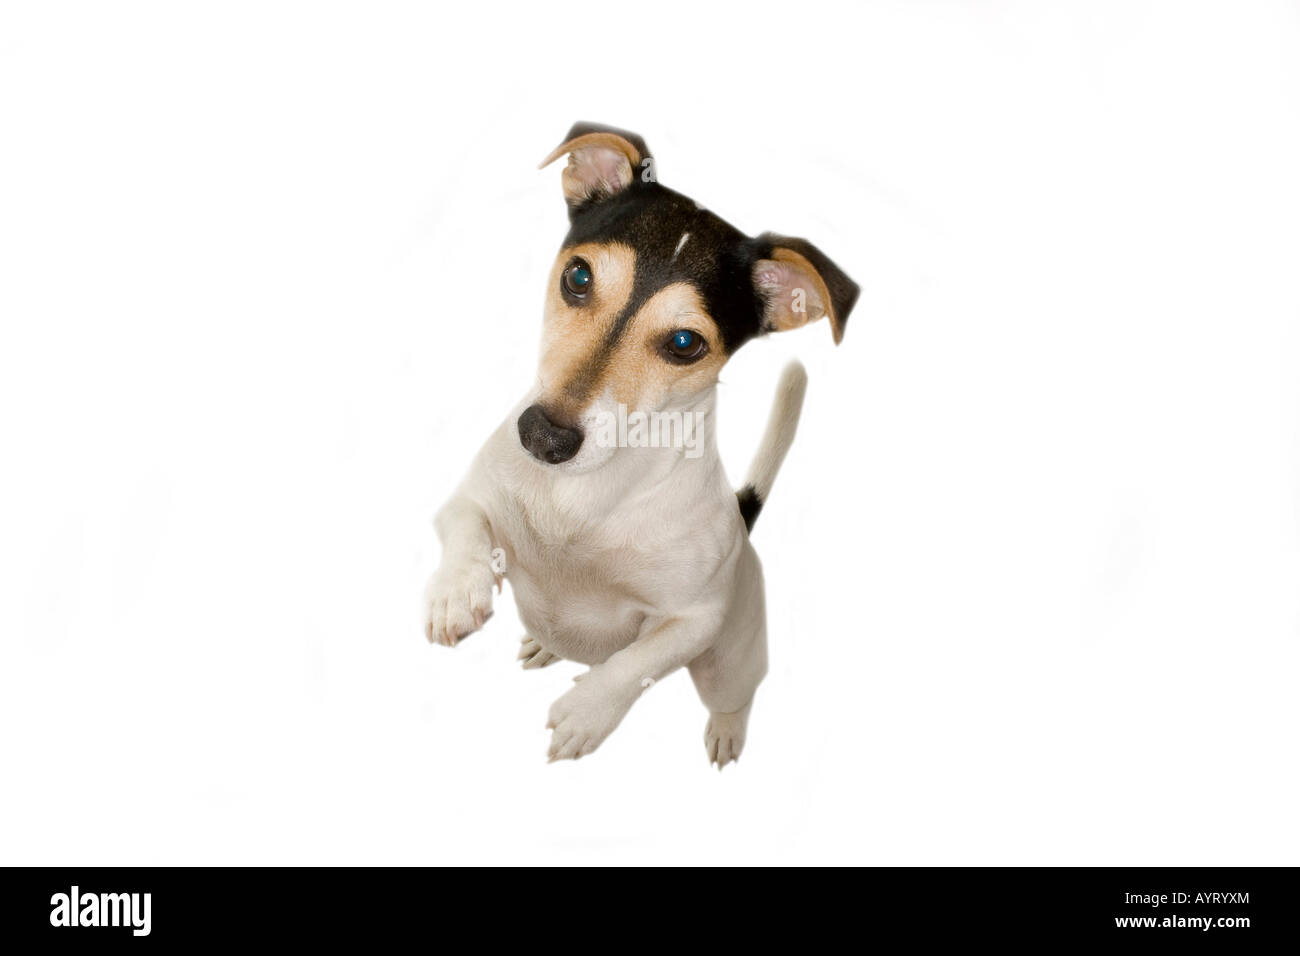 Sweet Jack Russell - Stock Image